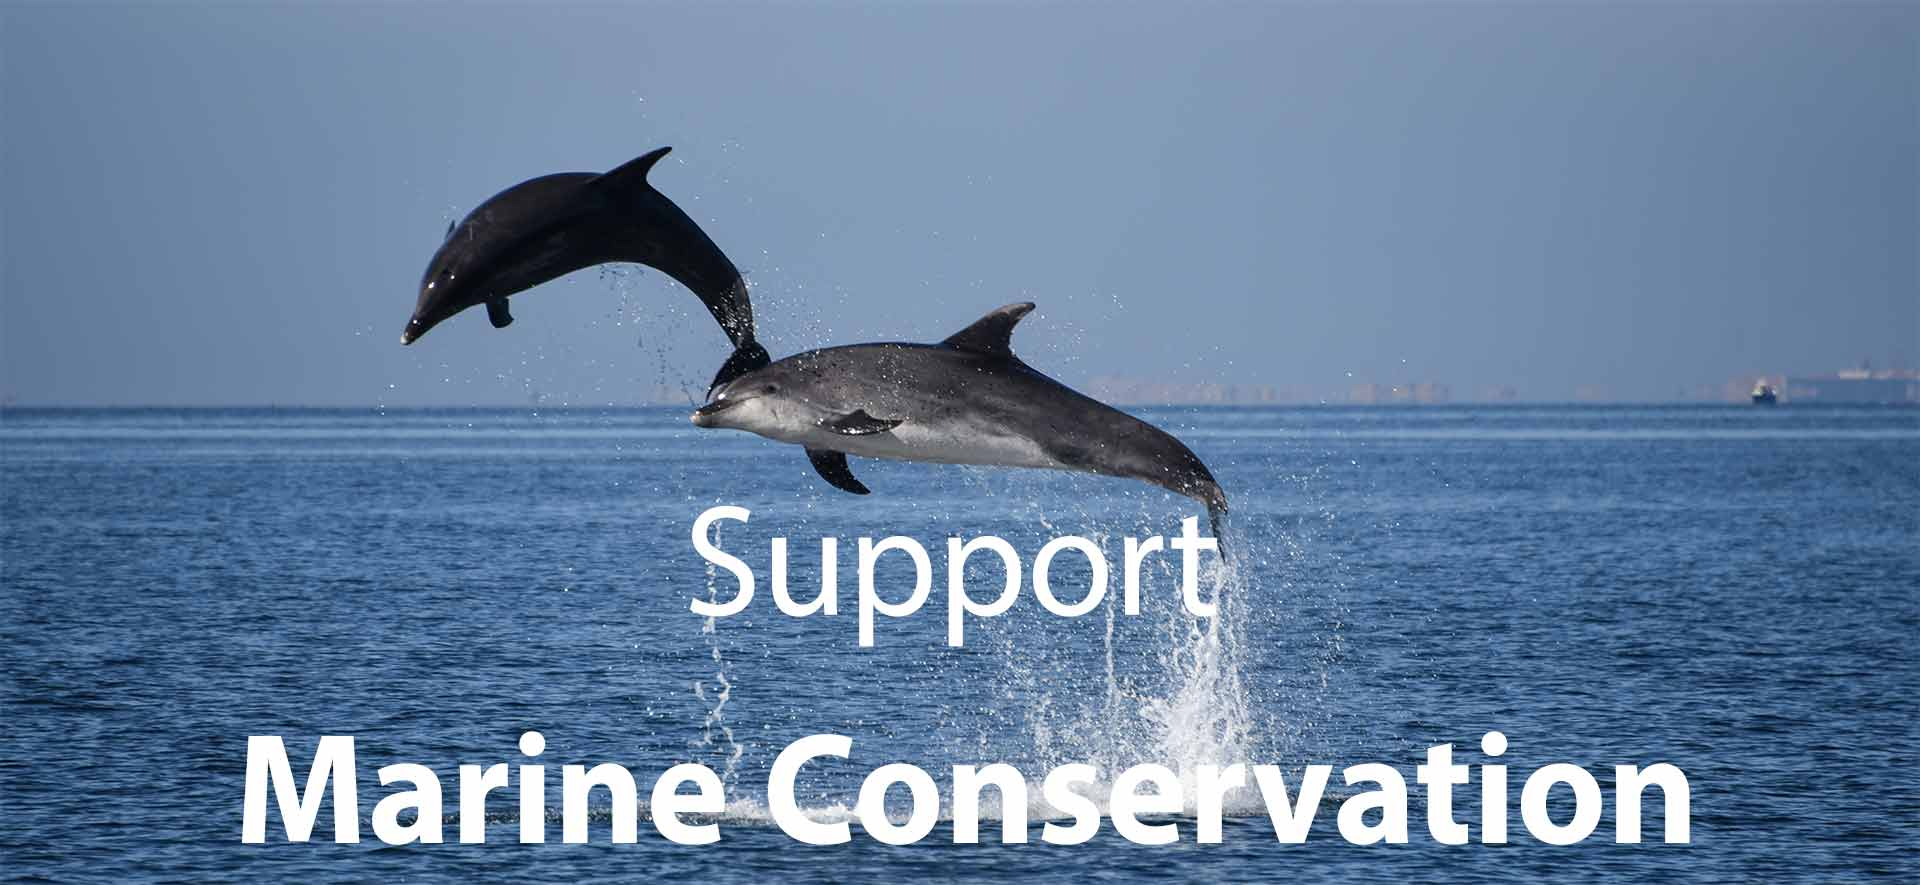 Support marine conservation